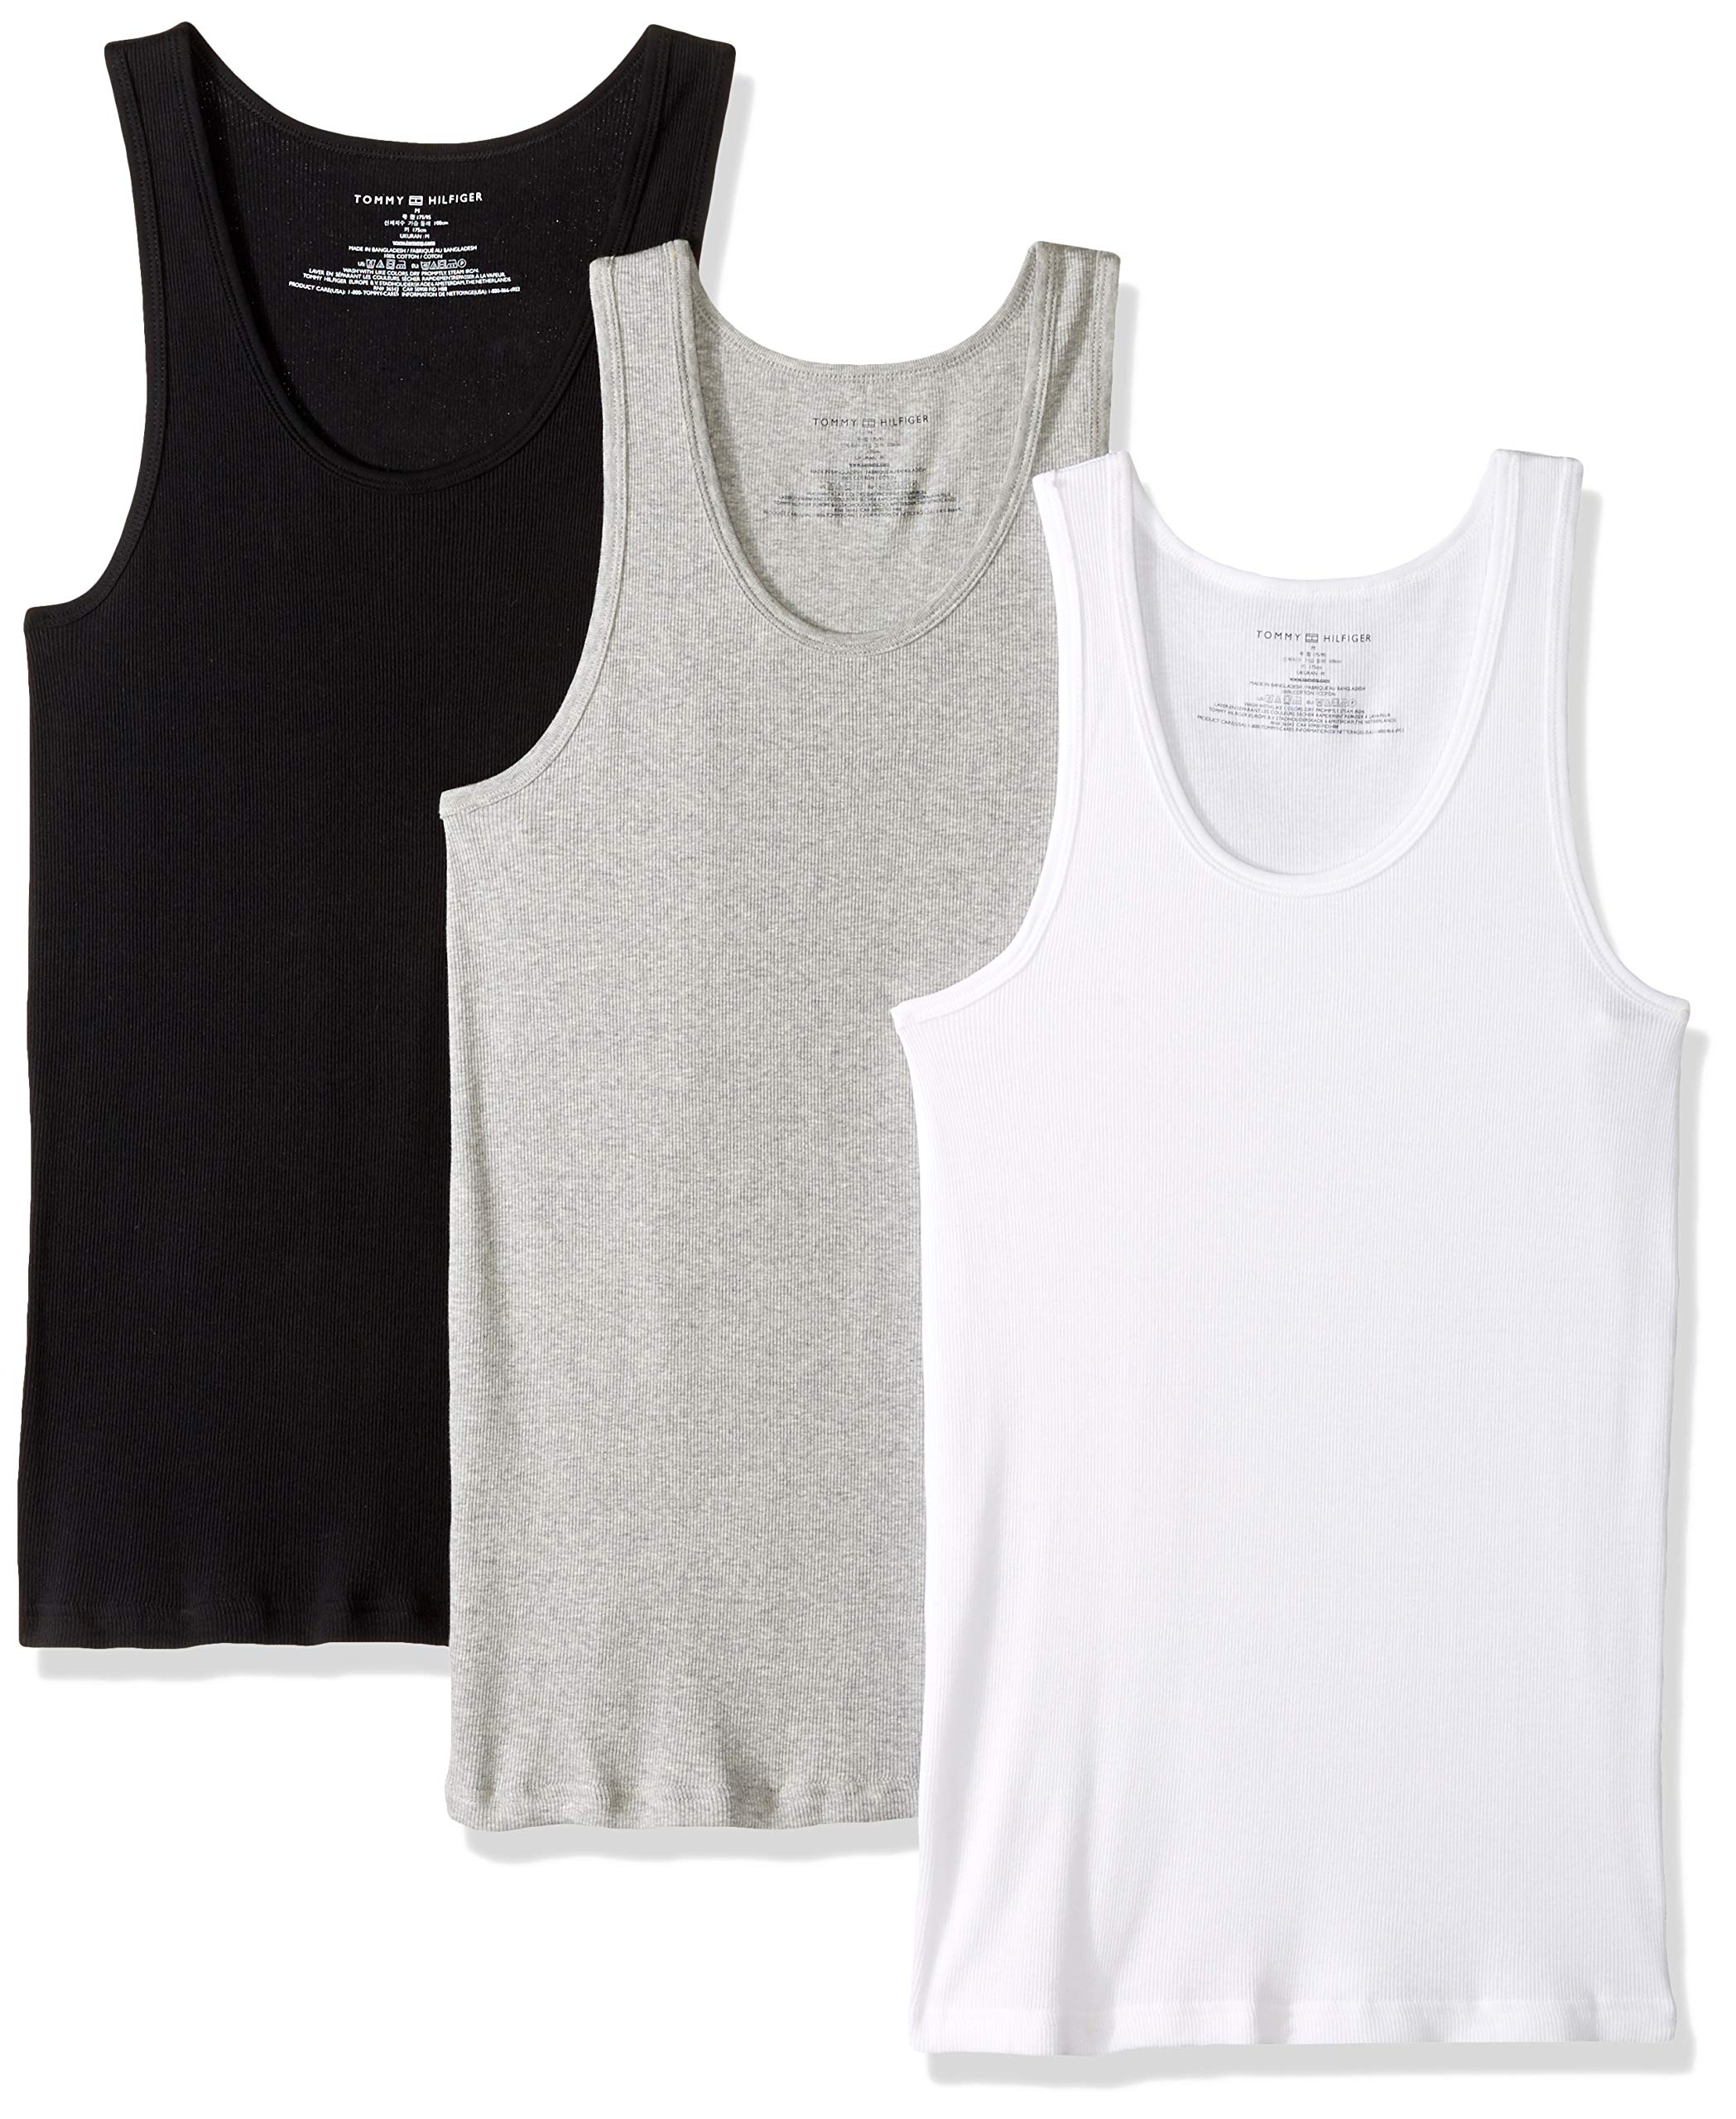 Tommy Hilfiger Men's Undershirts Multipack Cotton Classics A-Shirts, Black/Grey/White, Medium by Tommy Hilfiger